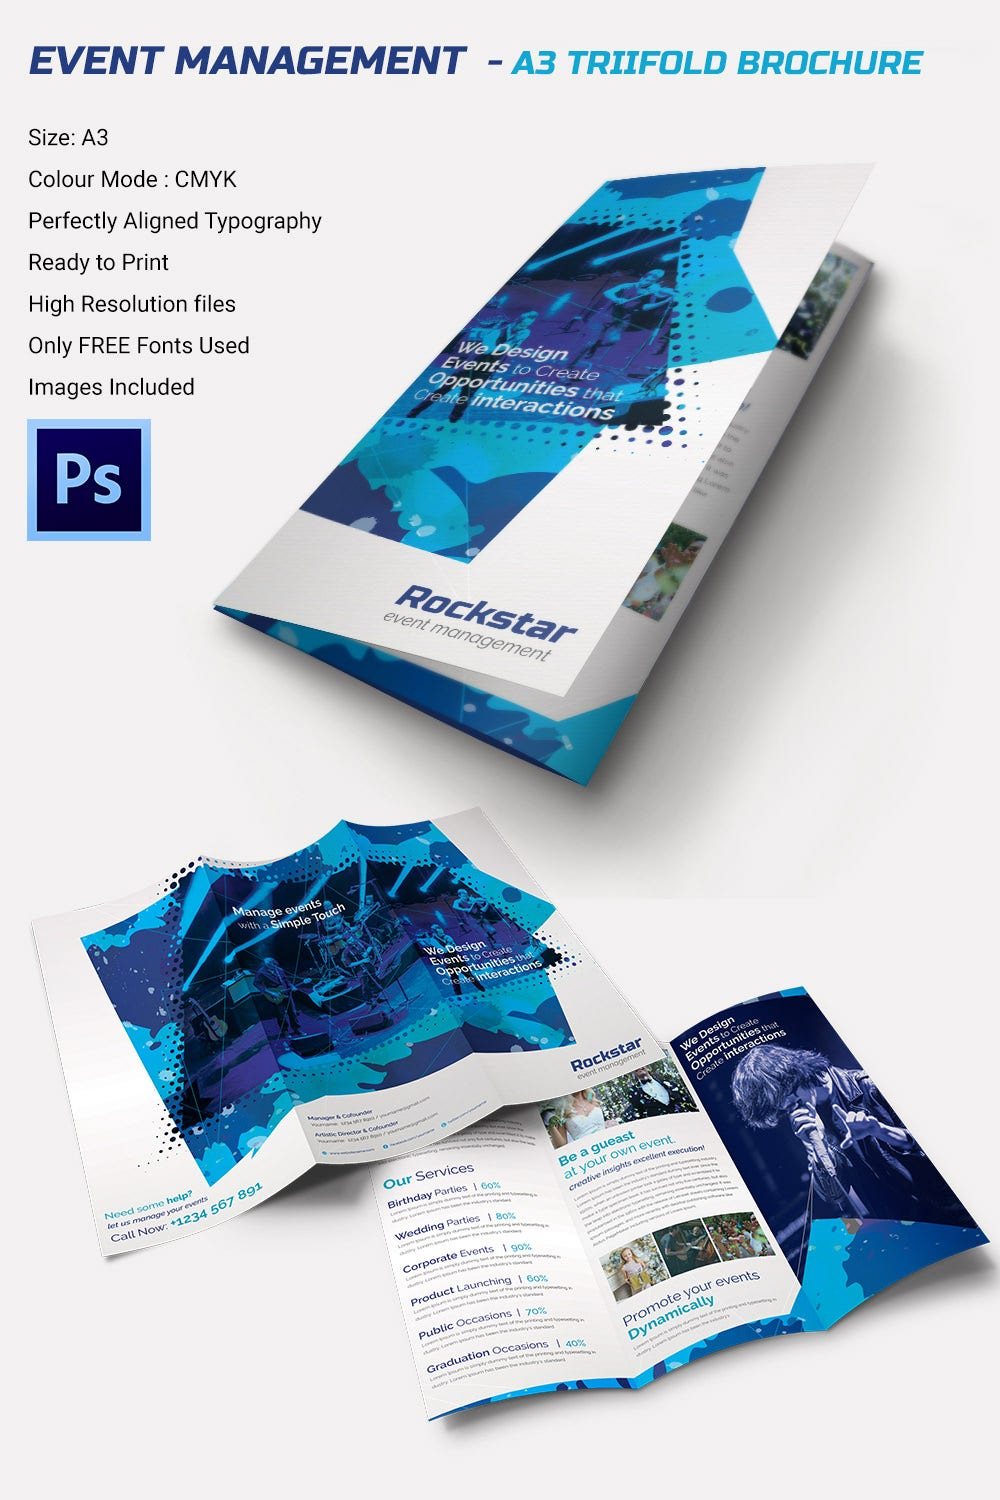 16 event brochure templates psd designs free for Brochures design templates